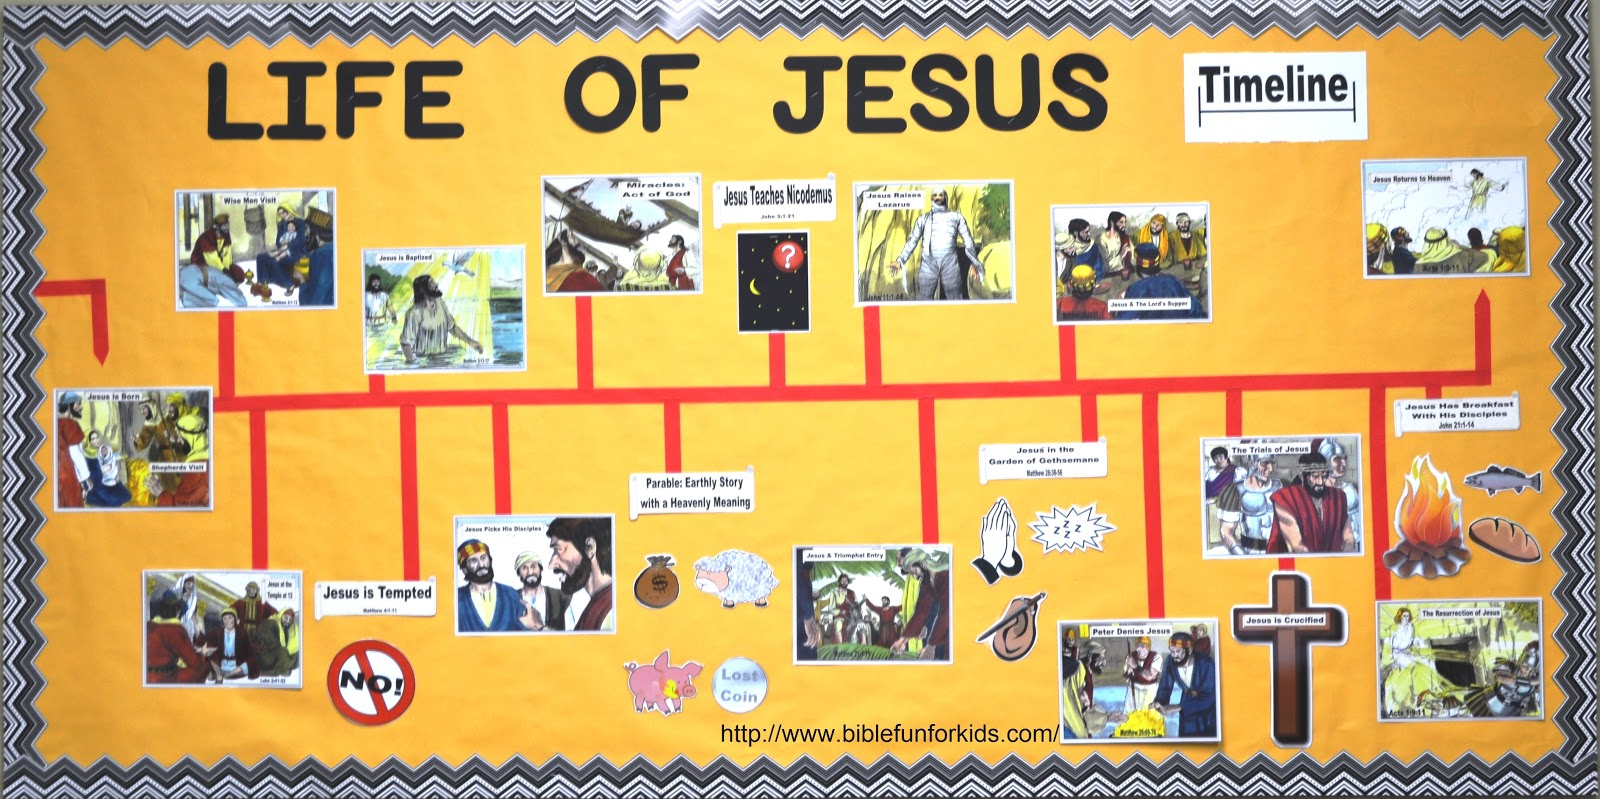 Life of Jesus in the New Testament